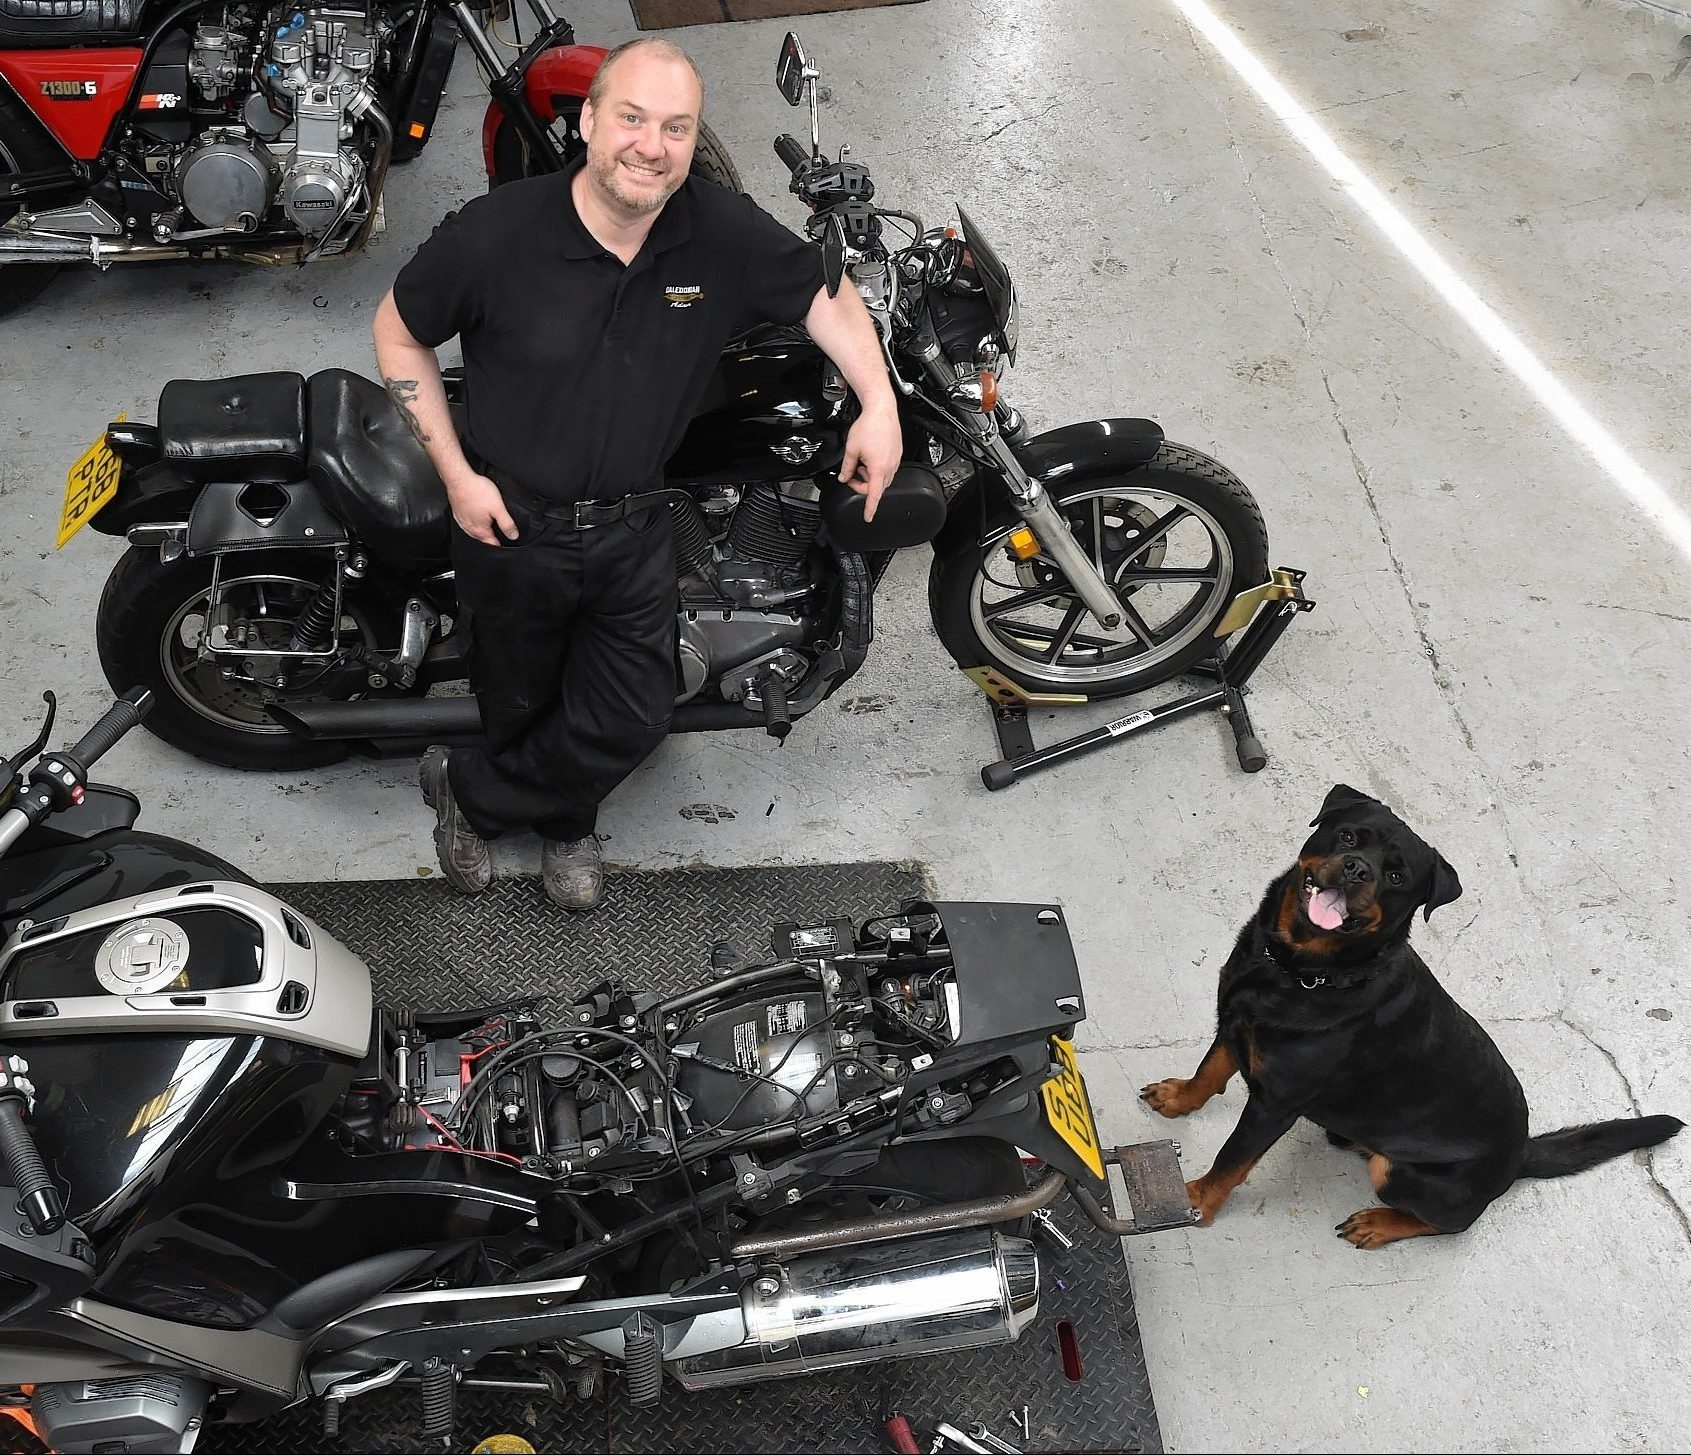 Adam Grozier pictured with his dog, Tig, at Caledonian Customs in Laurencekirk.